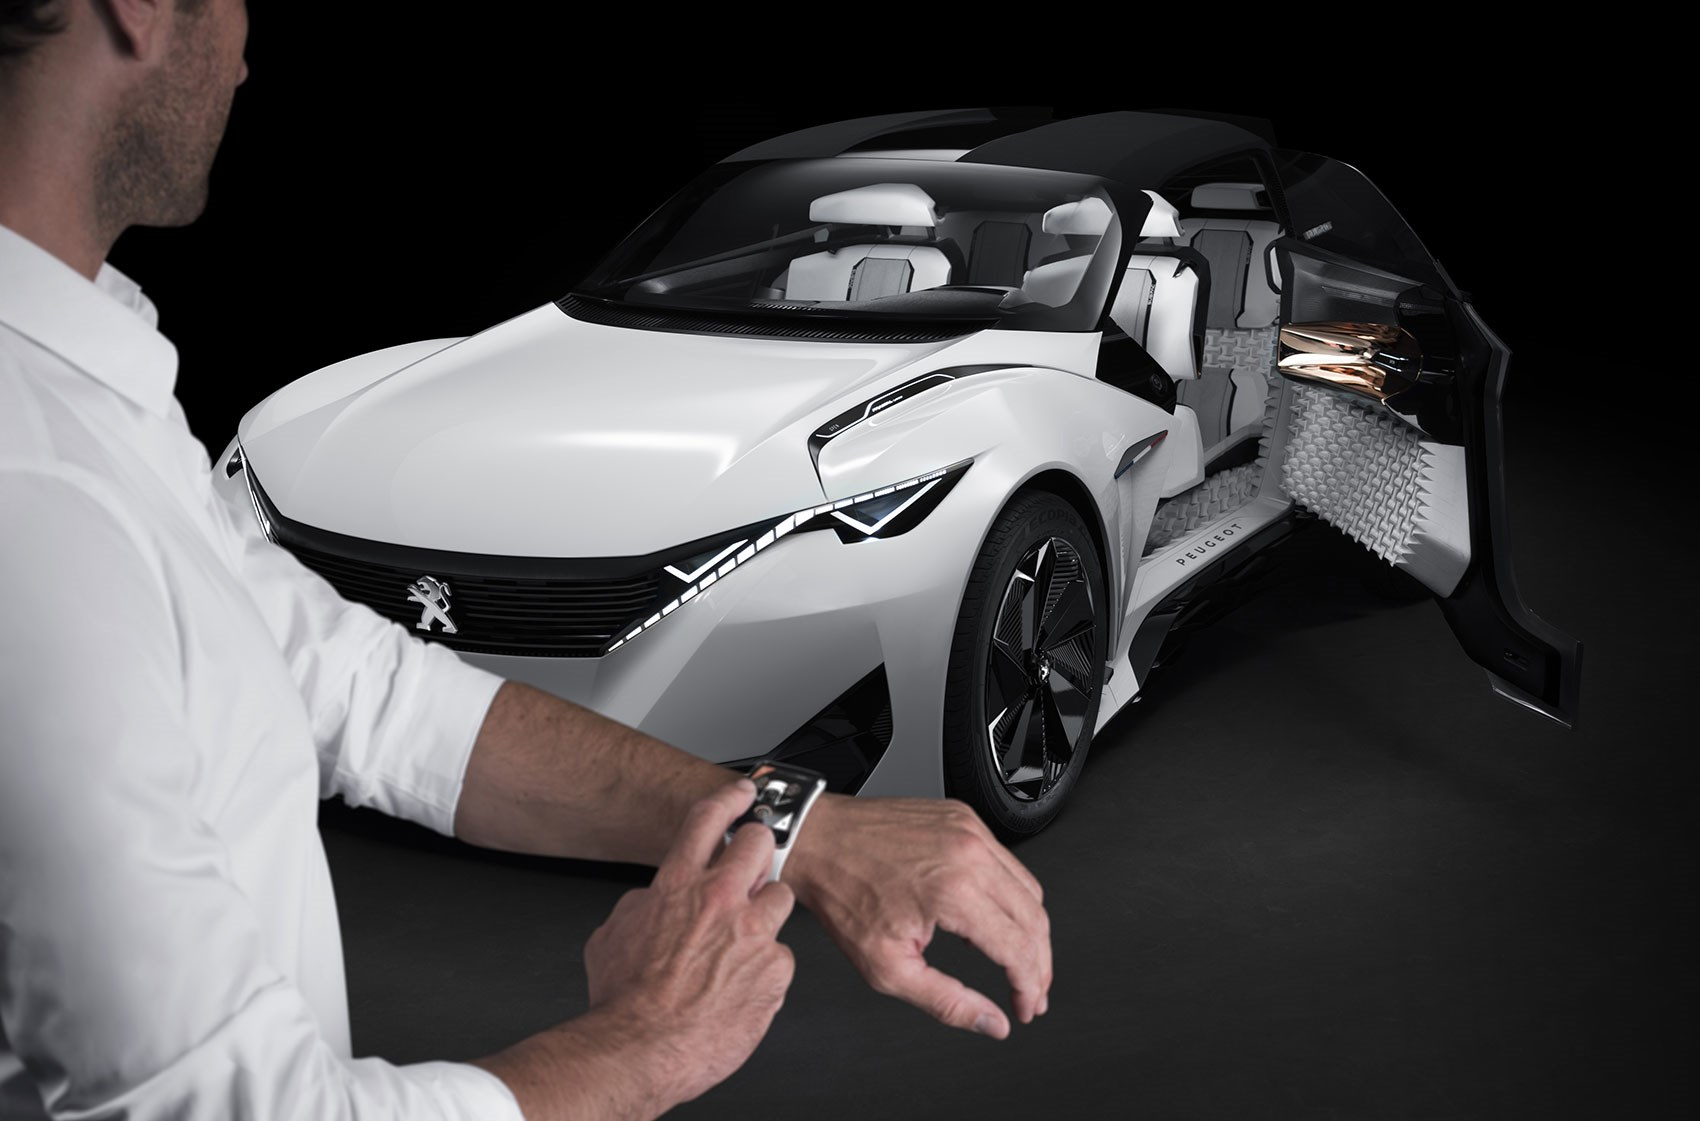 Peugeot Fractal concept: an angry looking \'urban coupe\' | CAR Magazine